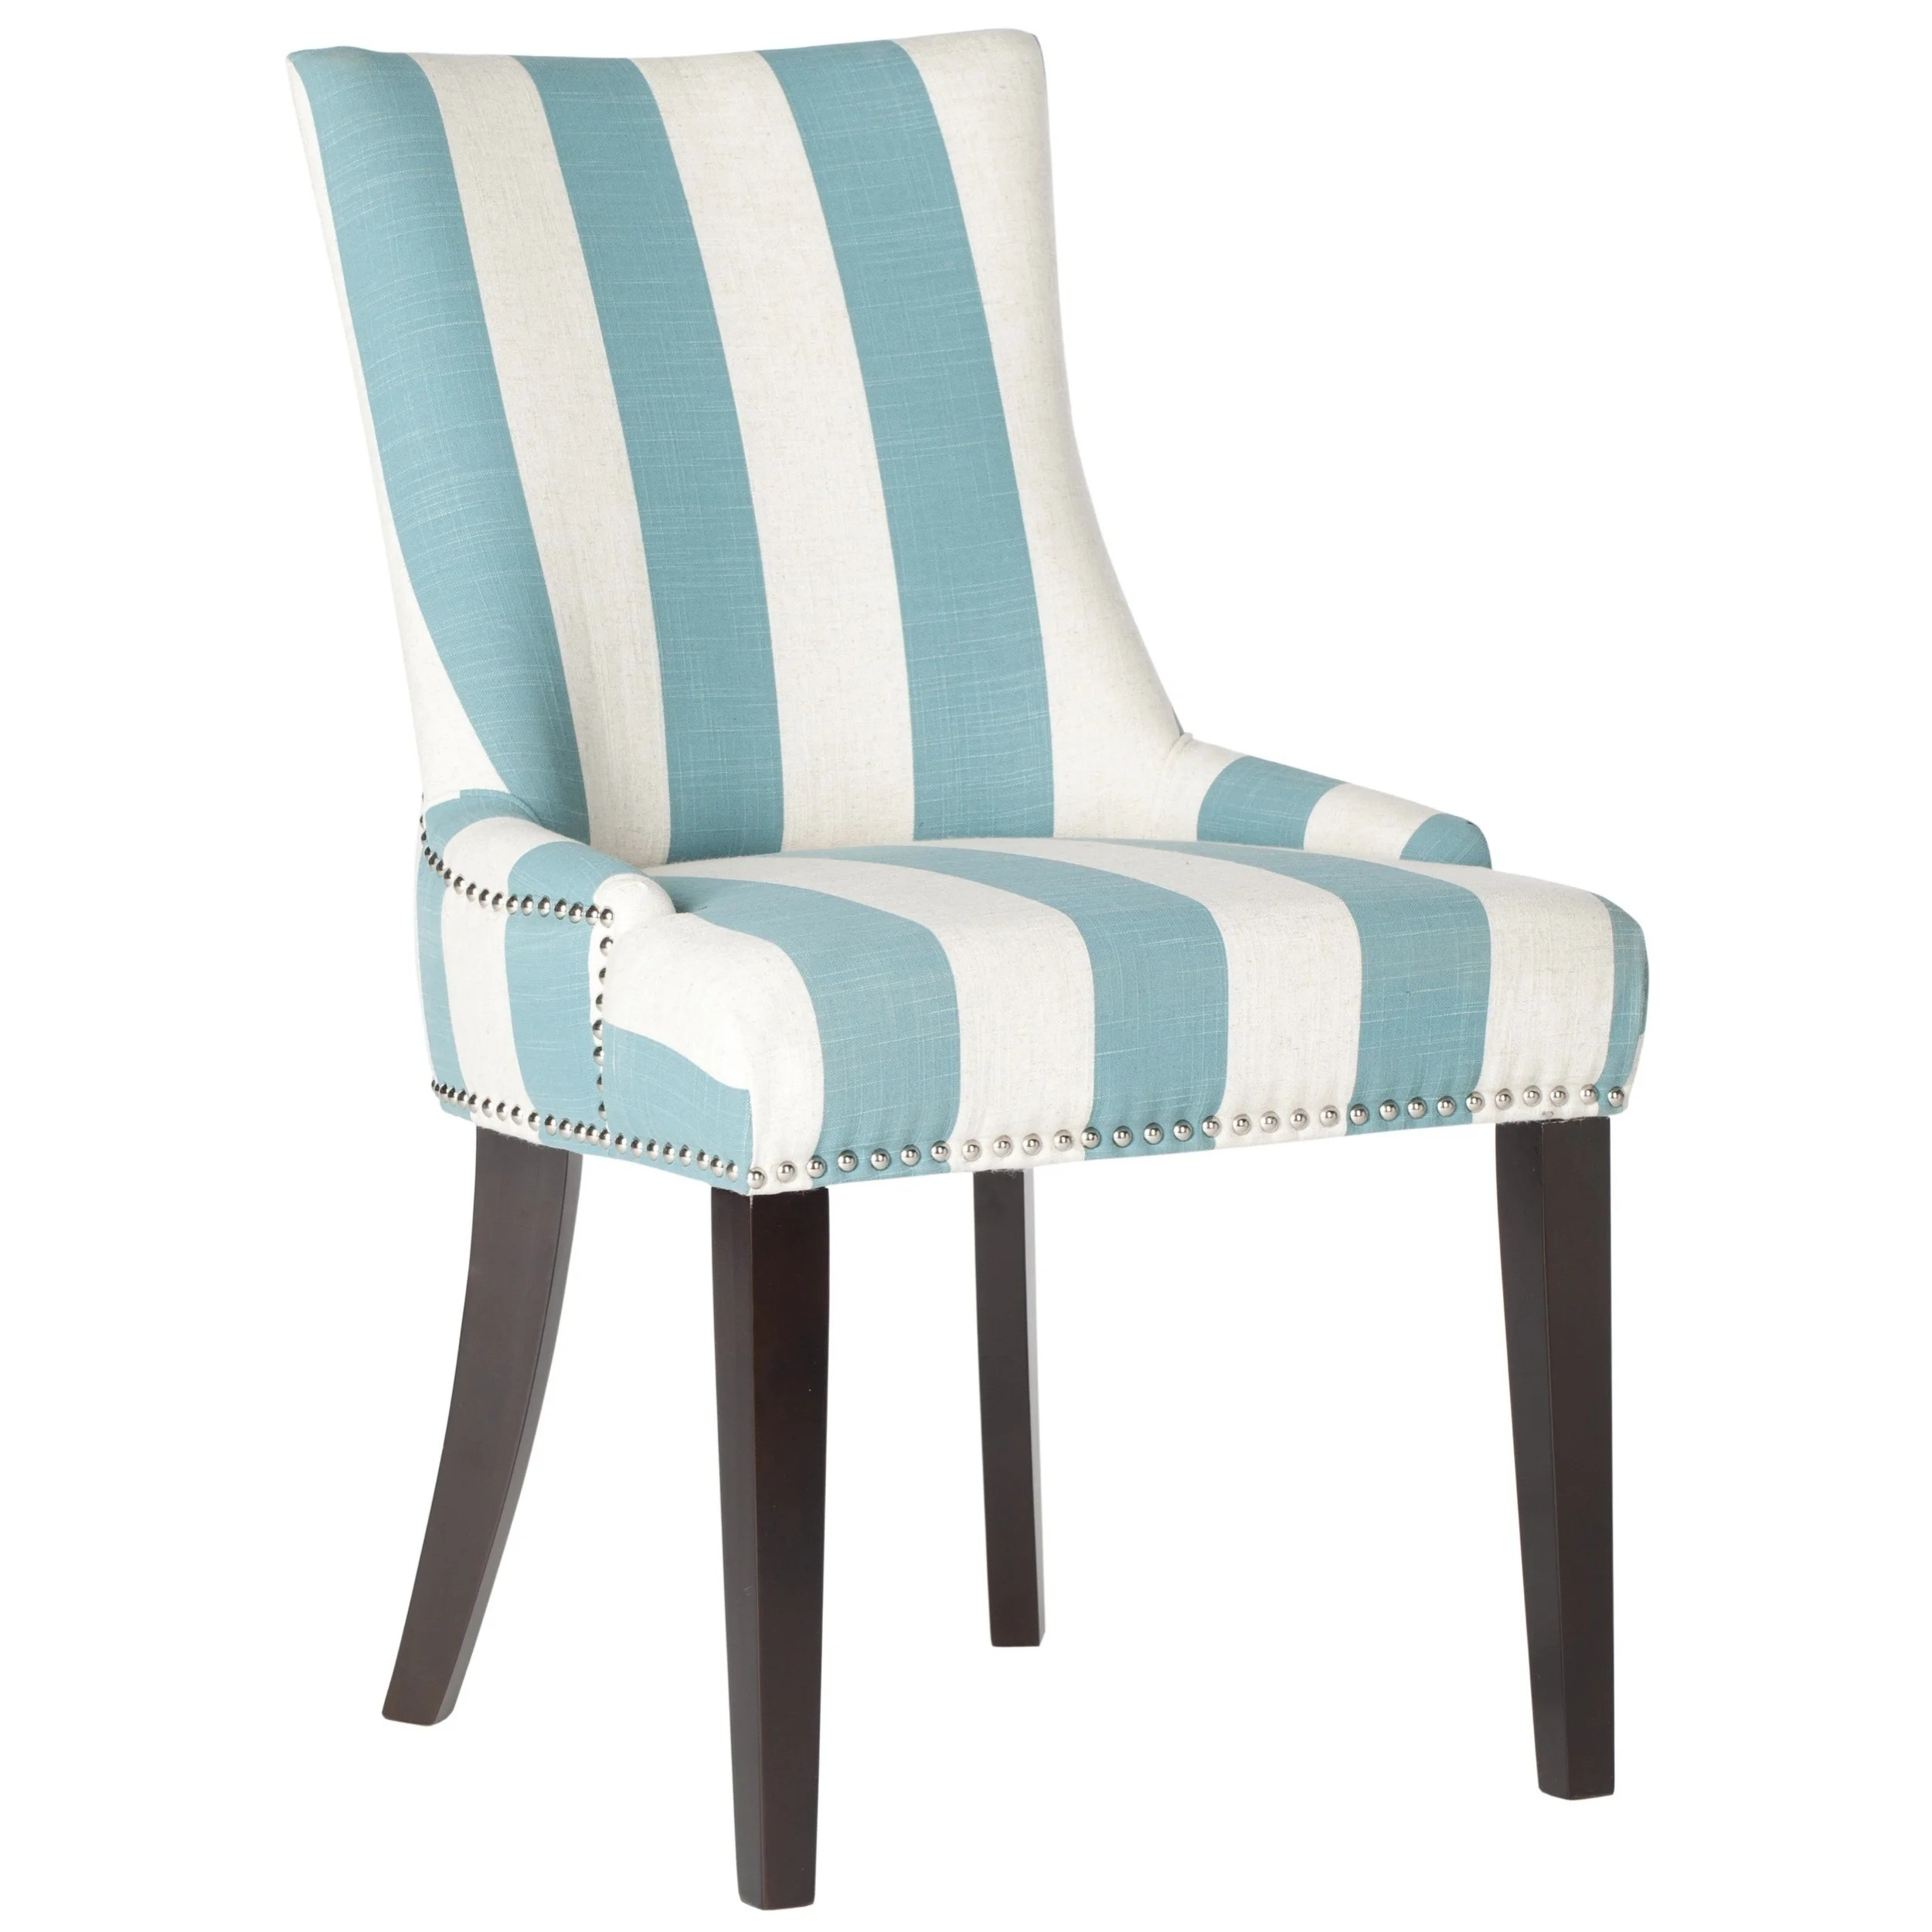 Blue And White Striped Chair Safavieh En Vogue Dining Lester Aqua Blue White Stripe Polyester Blend Dining Chairs Set Of 2